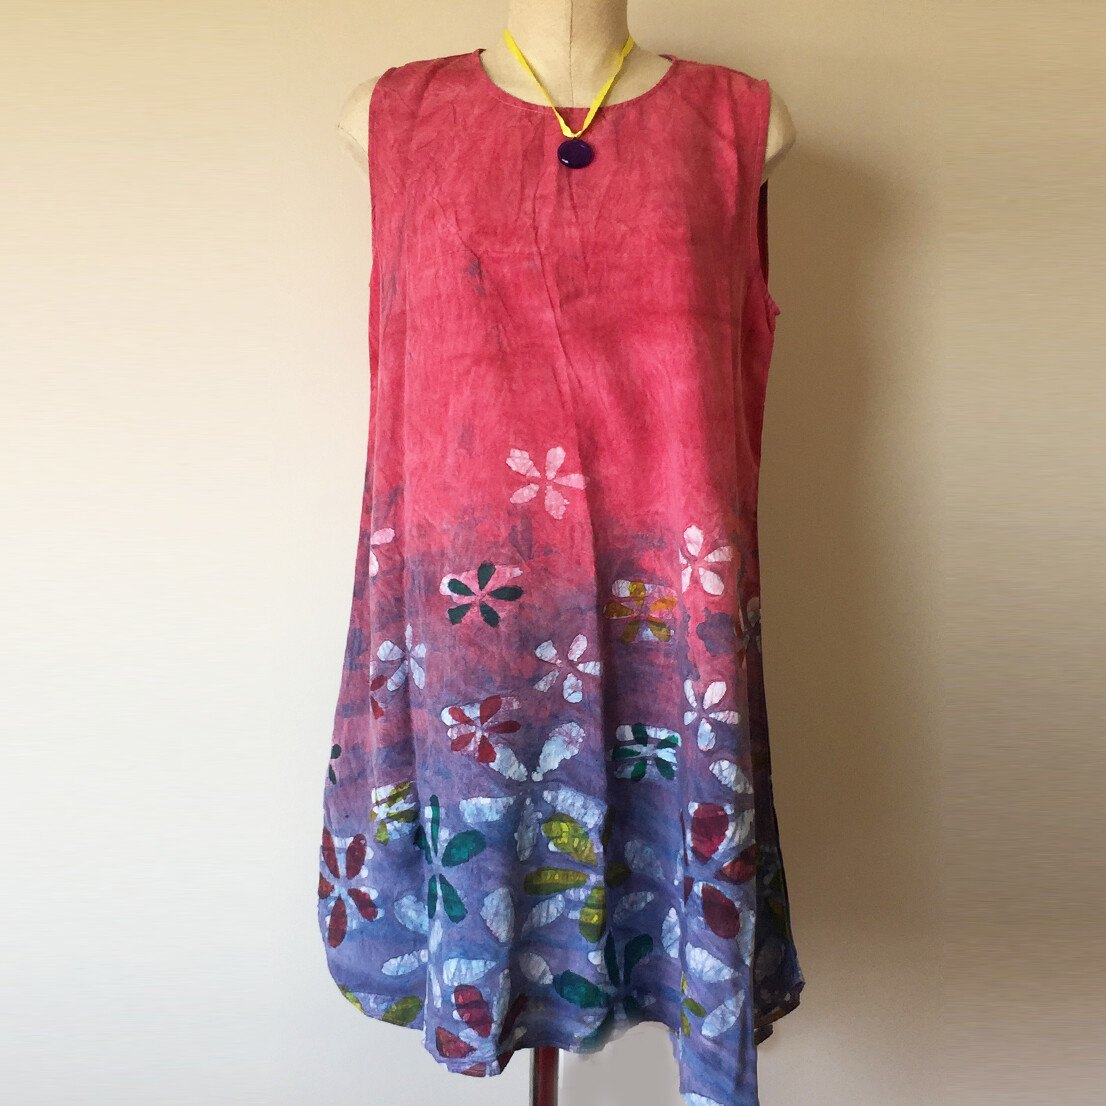 Samar Hassanein Batik Pink Dress with flowers